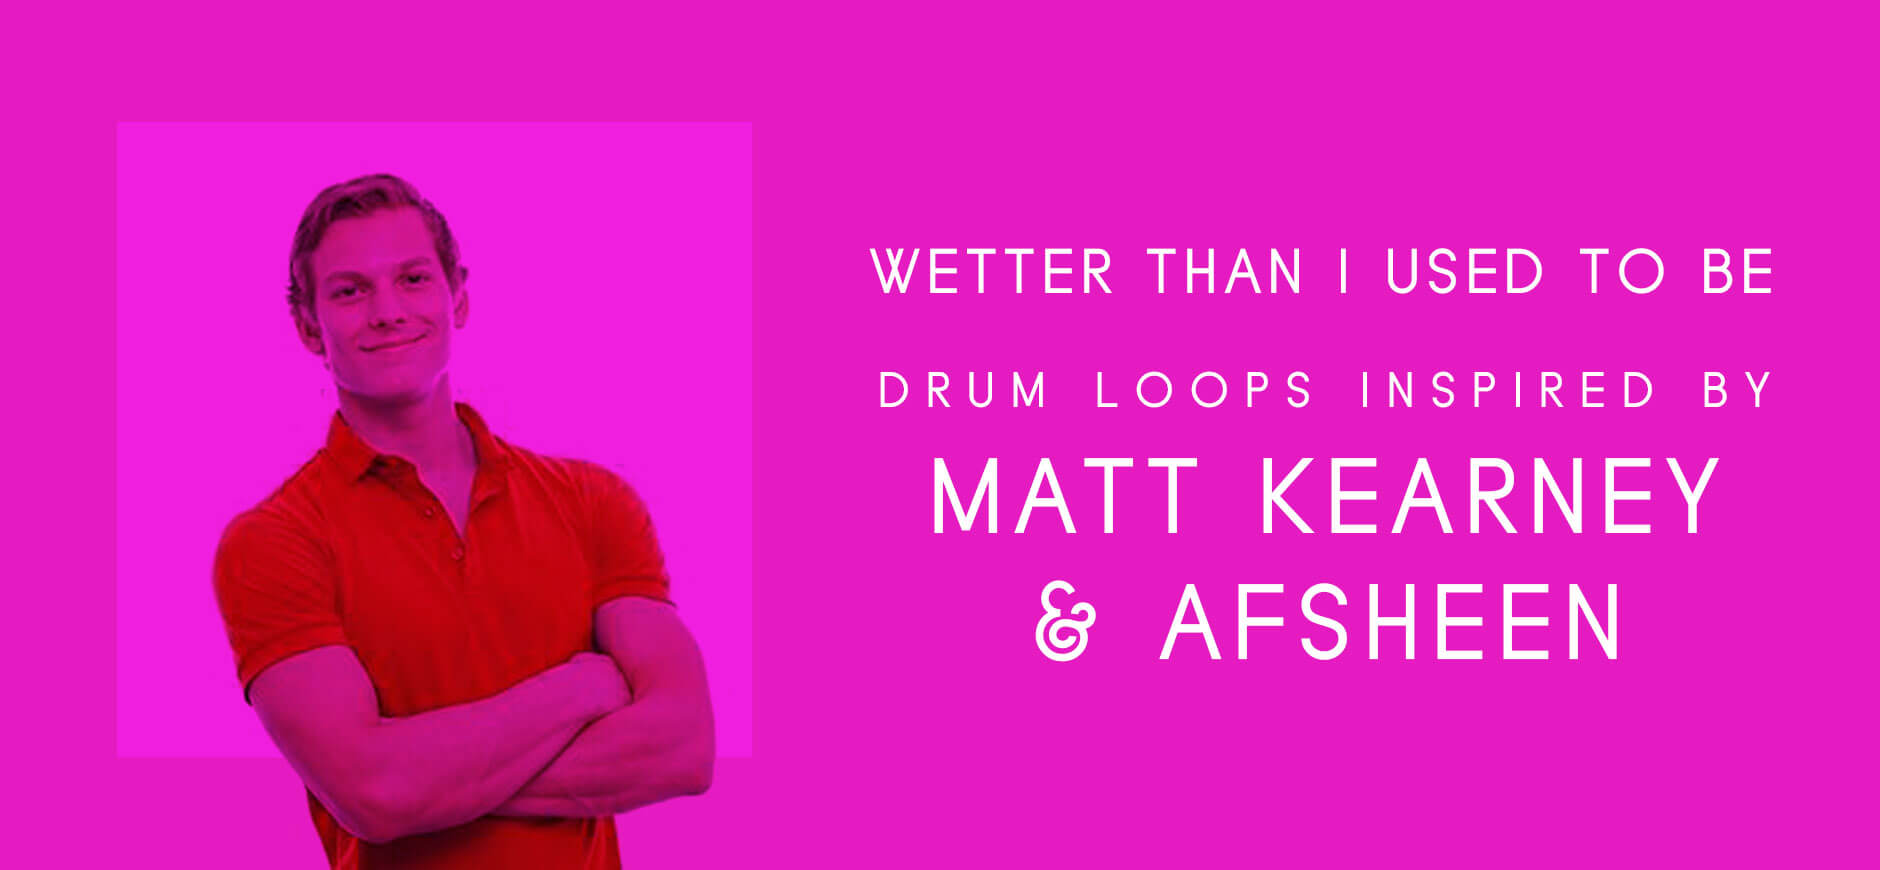 Better Than I Used to Be Drum Loops Inspired by Mat Kearney & Afsheen